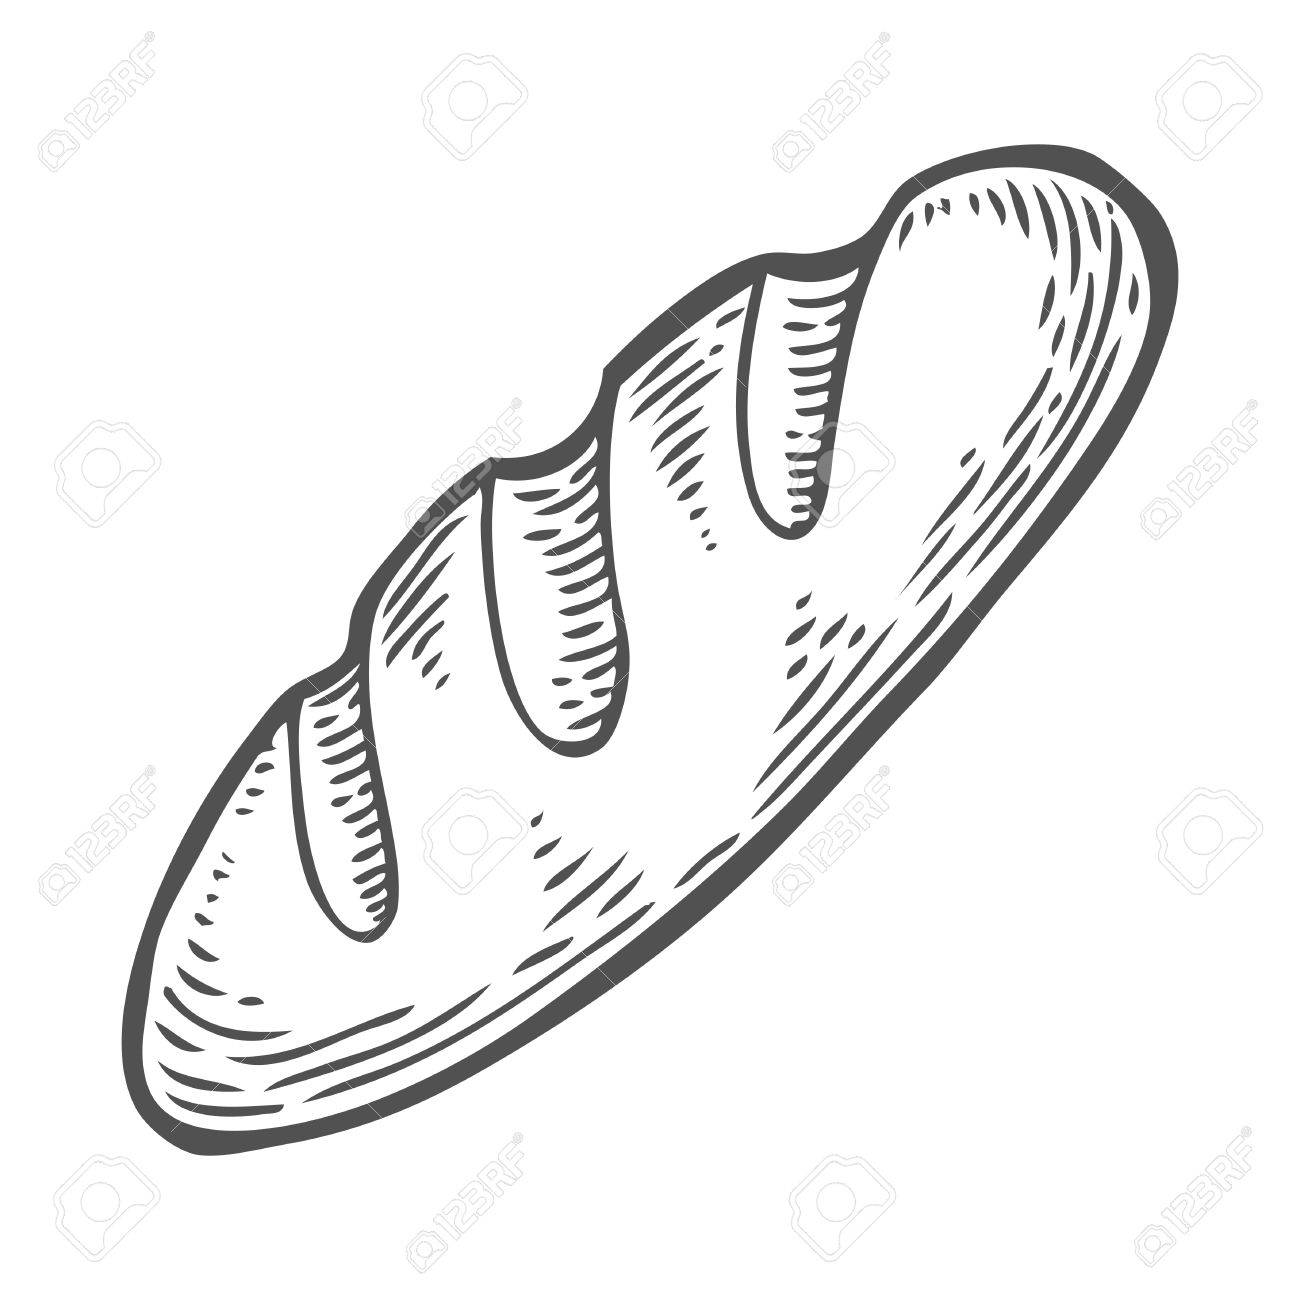 1300x1300 Bread Vector Hand Drawn Illustration. Other Types Of Wheat, Flour